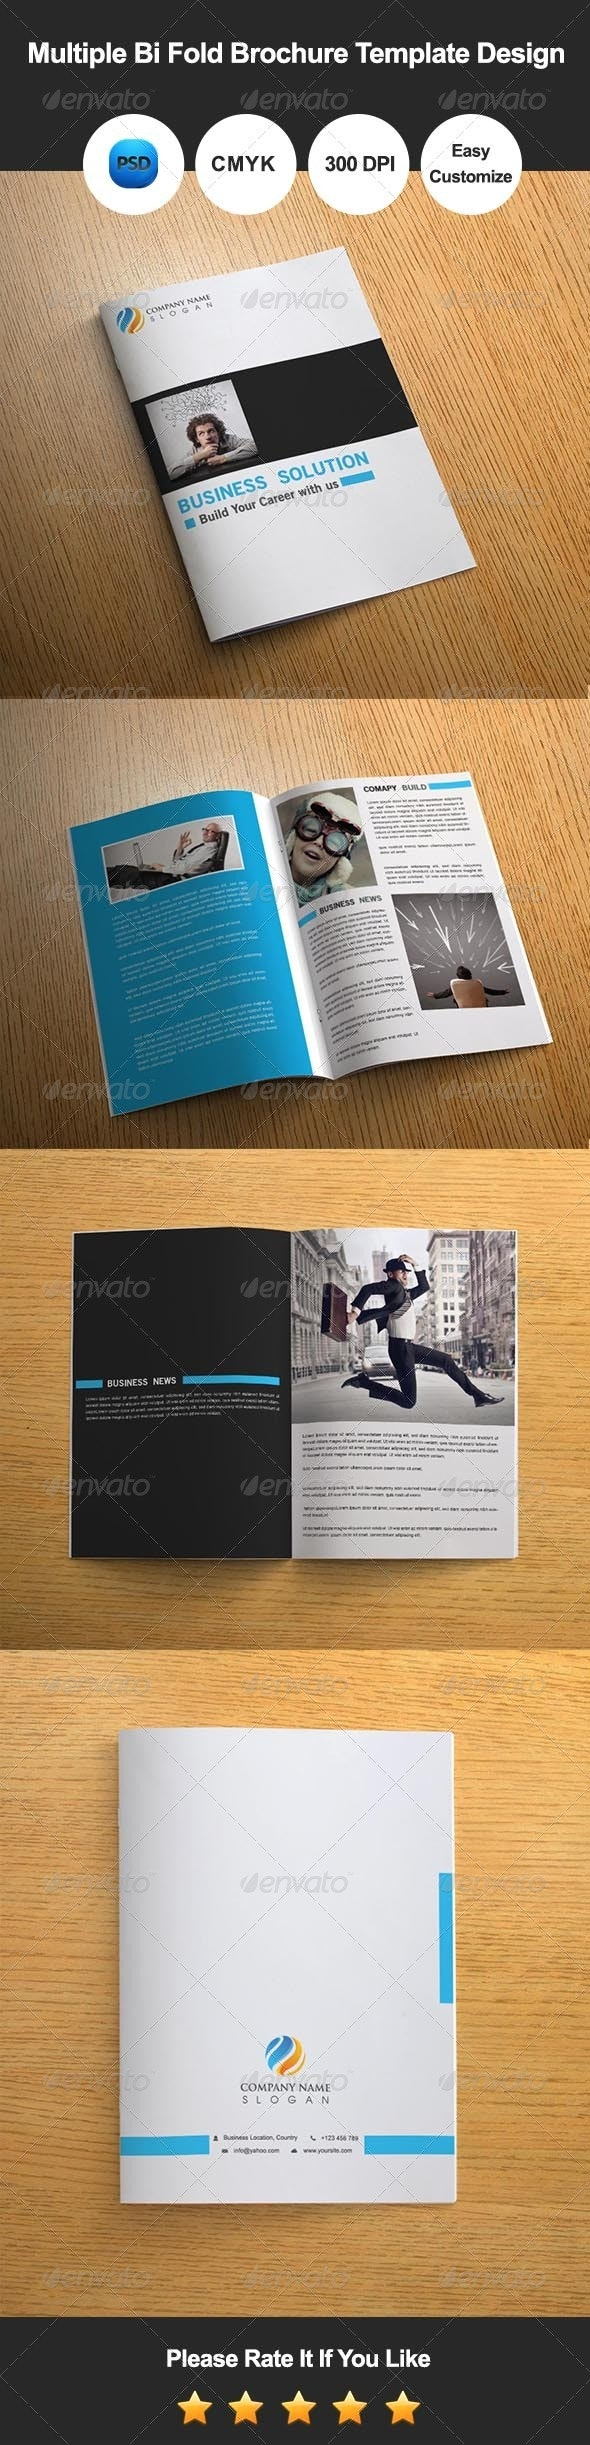 Multiple Bi Fold Brochure Template Design - Corporate Brochures